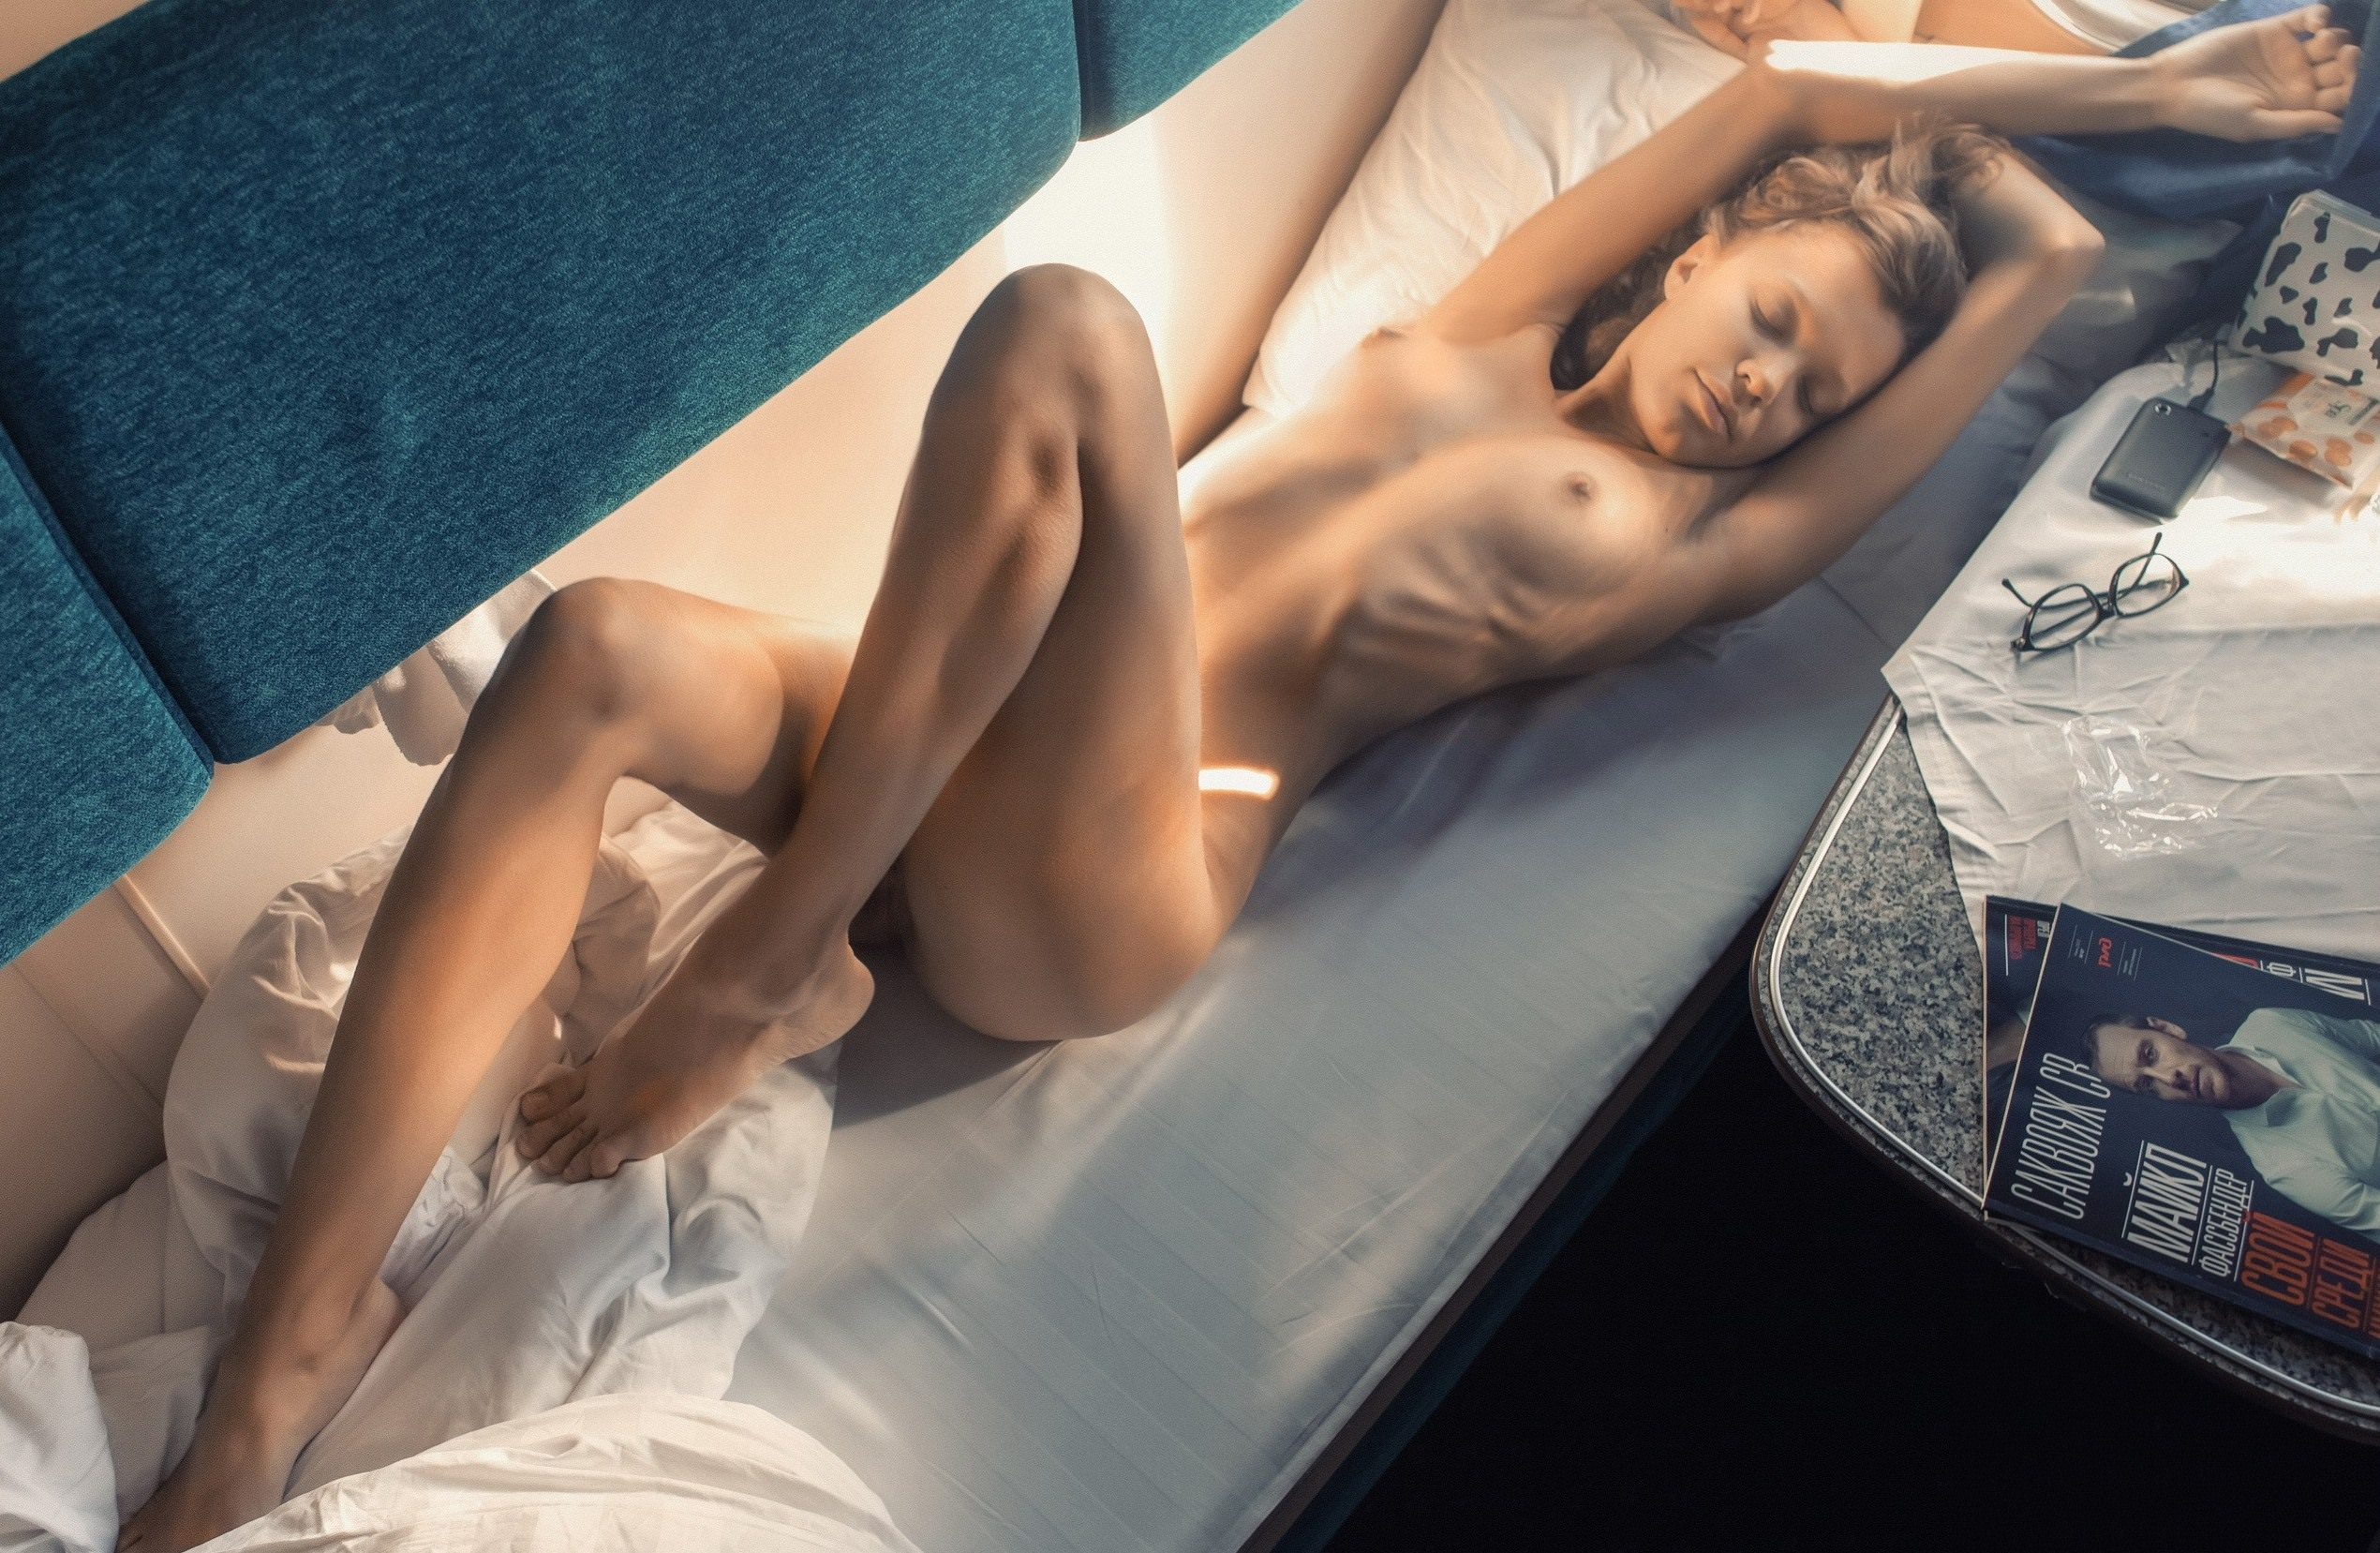 Nadine And Monique Naked On A Train